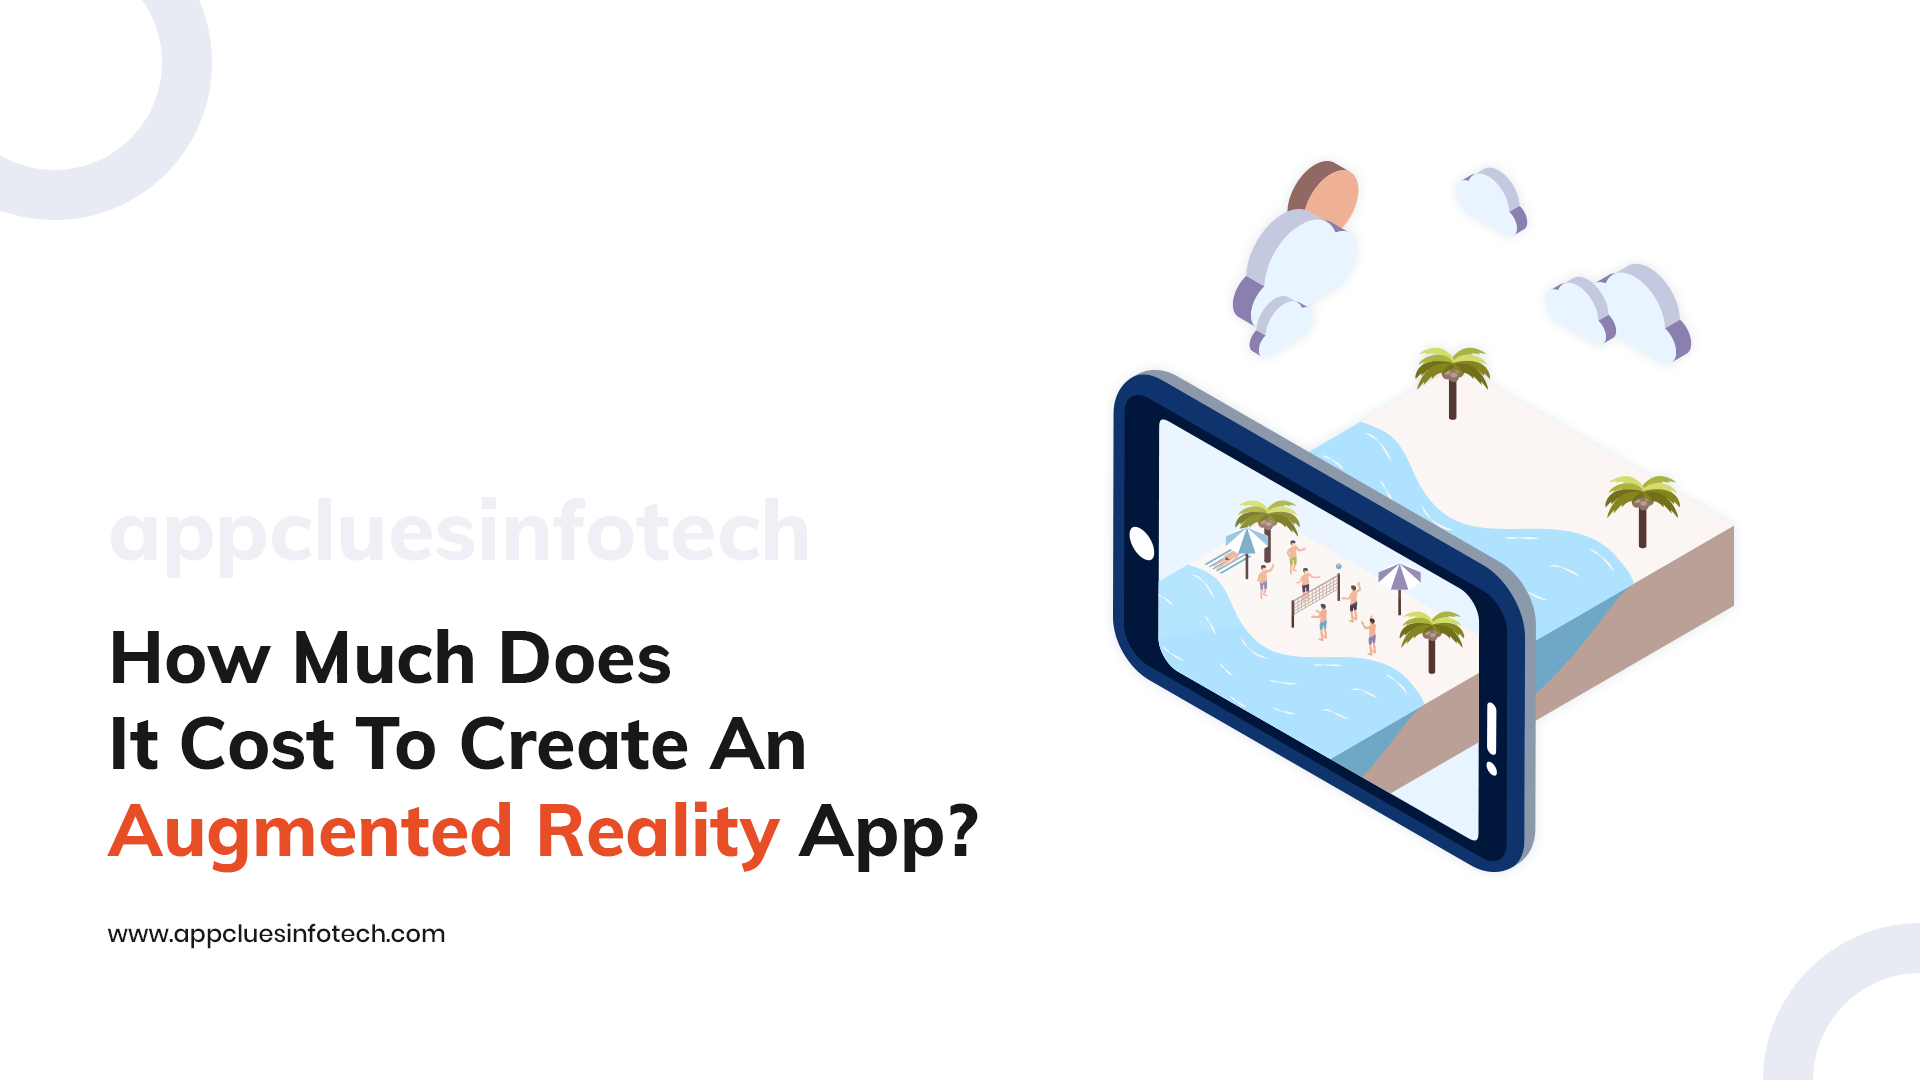 How Much Does It Cost To Create An Augmented Reality App